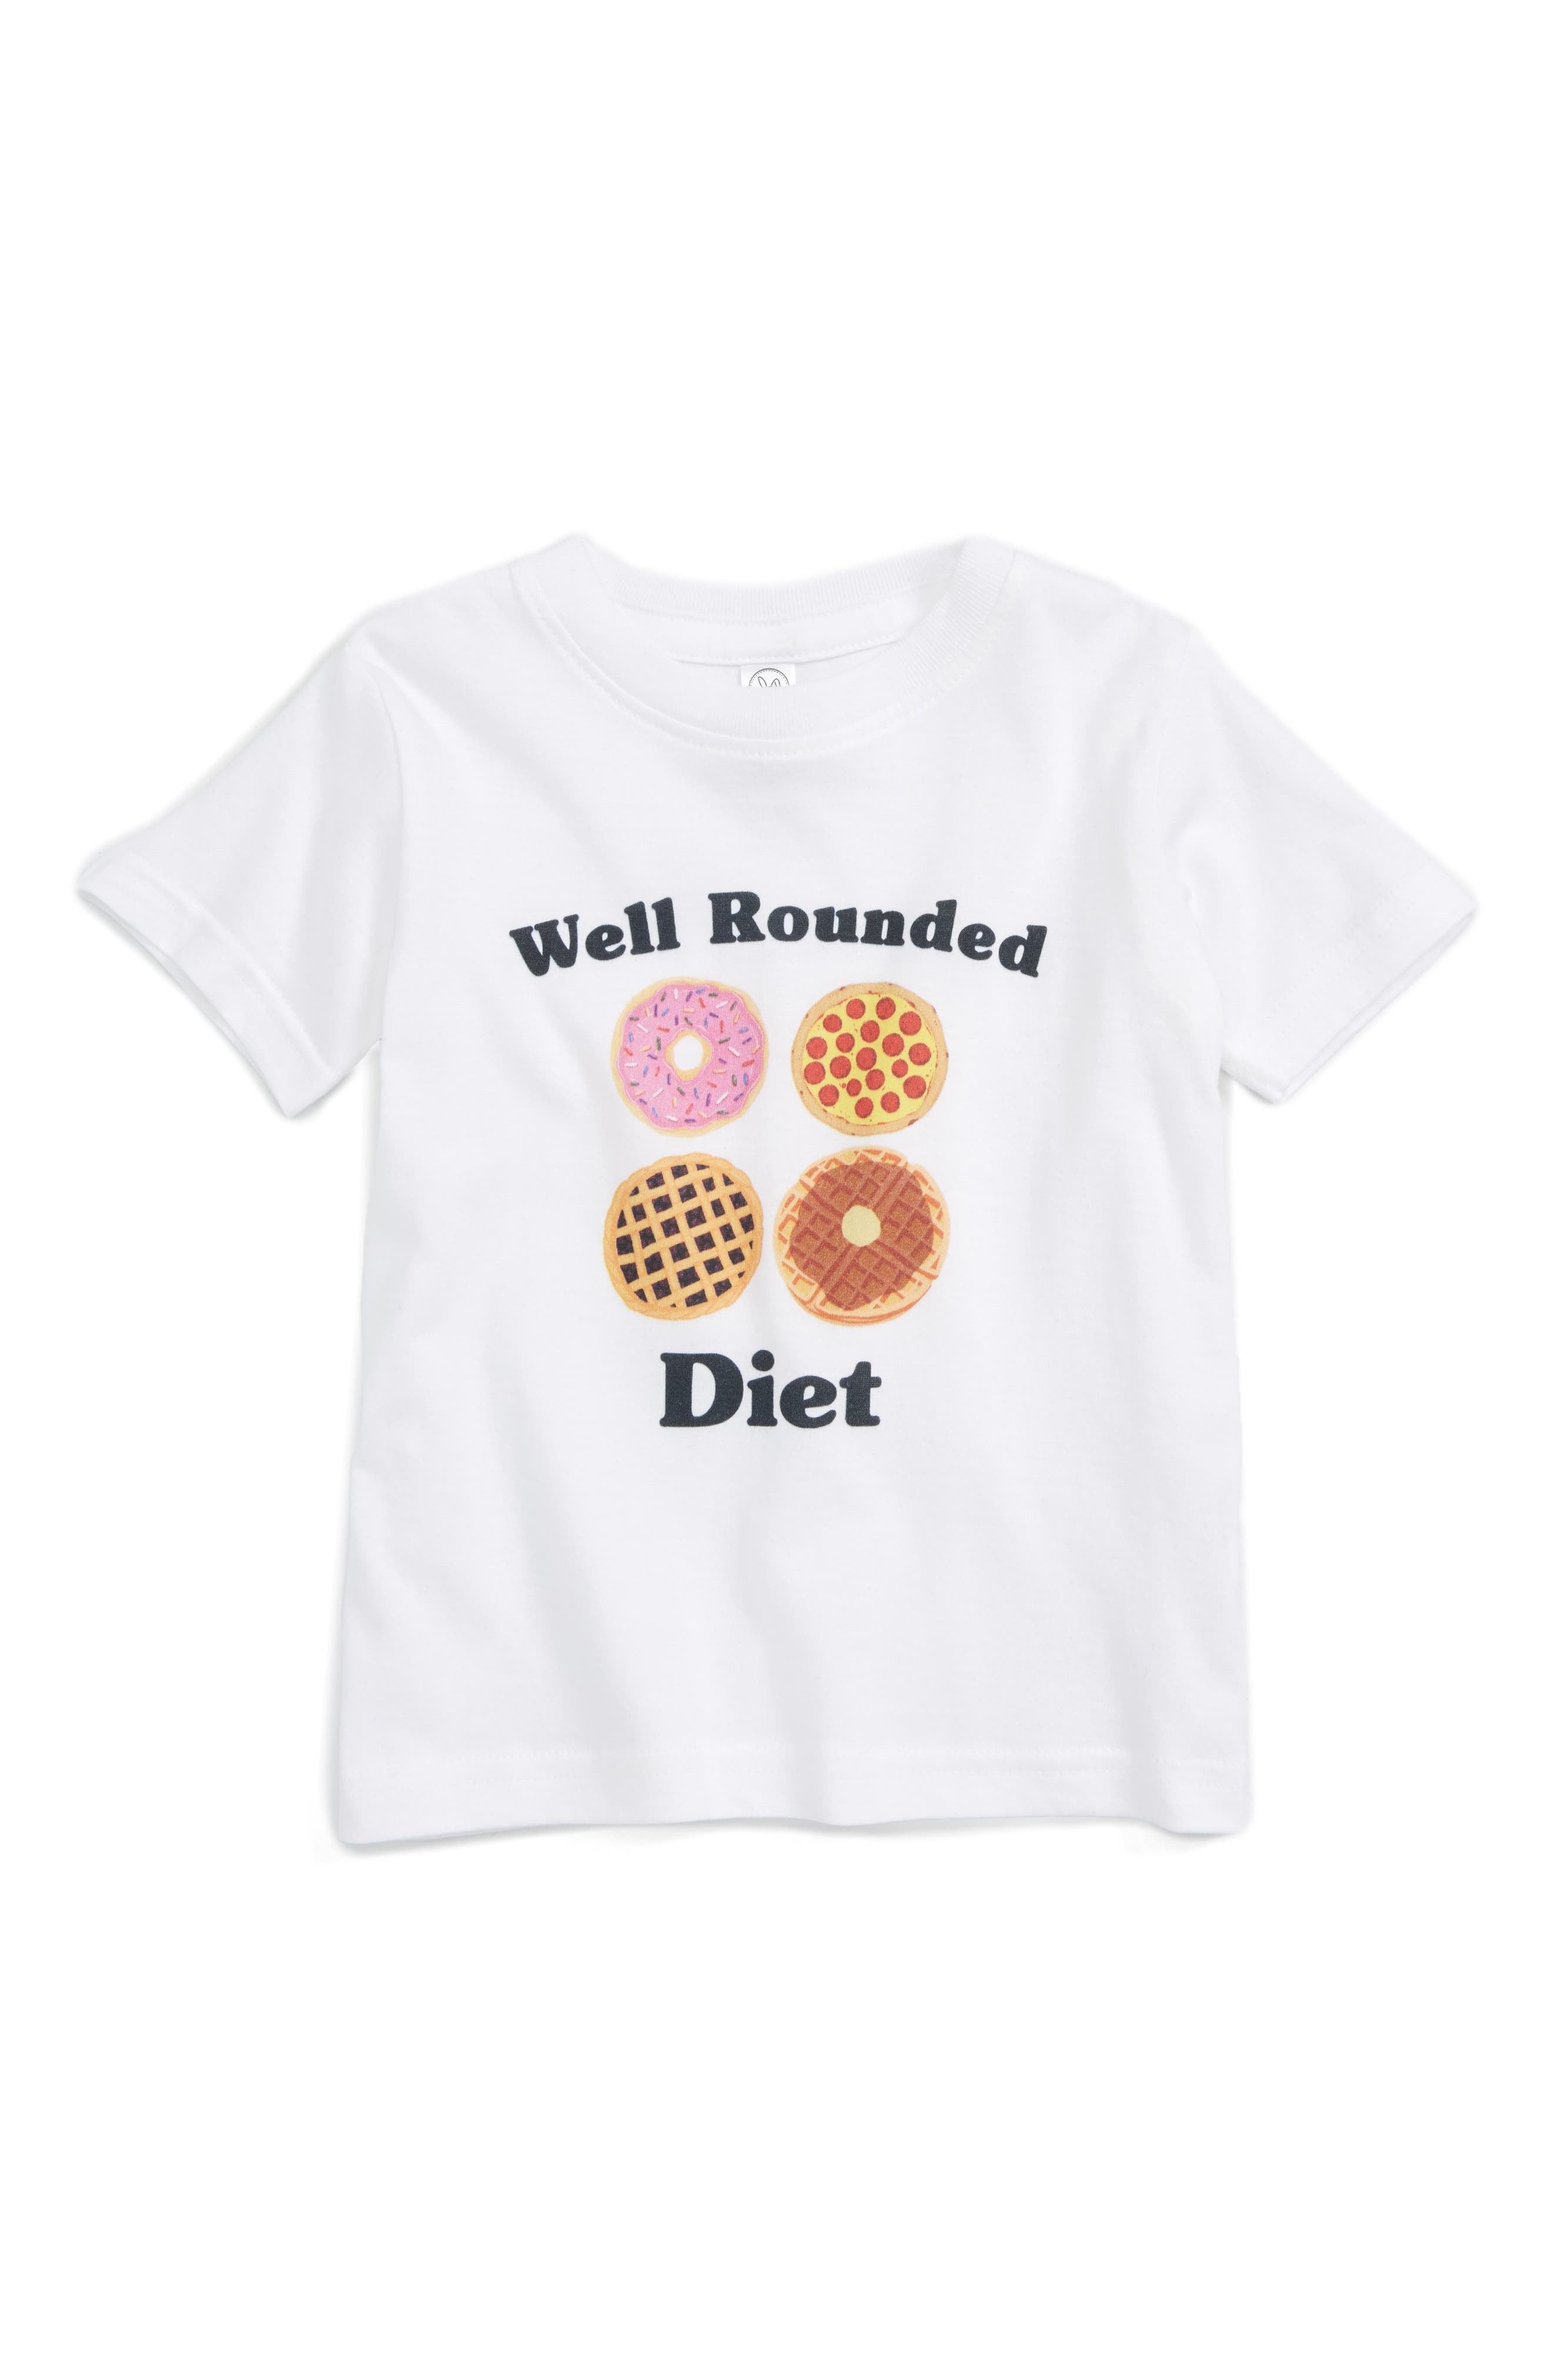 Alternate Image 1 Selected - Kid Dangerous Well Rounded Diet Tee (Baby)